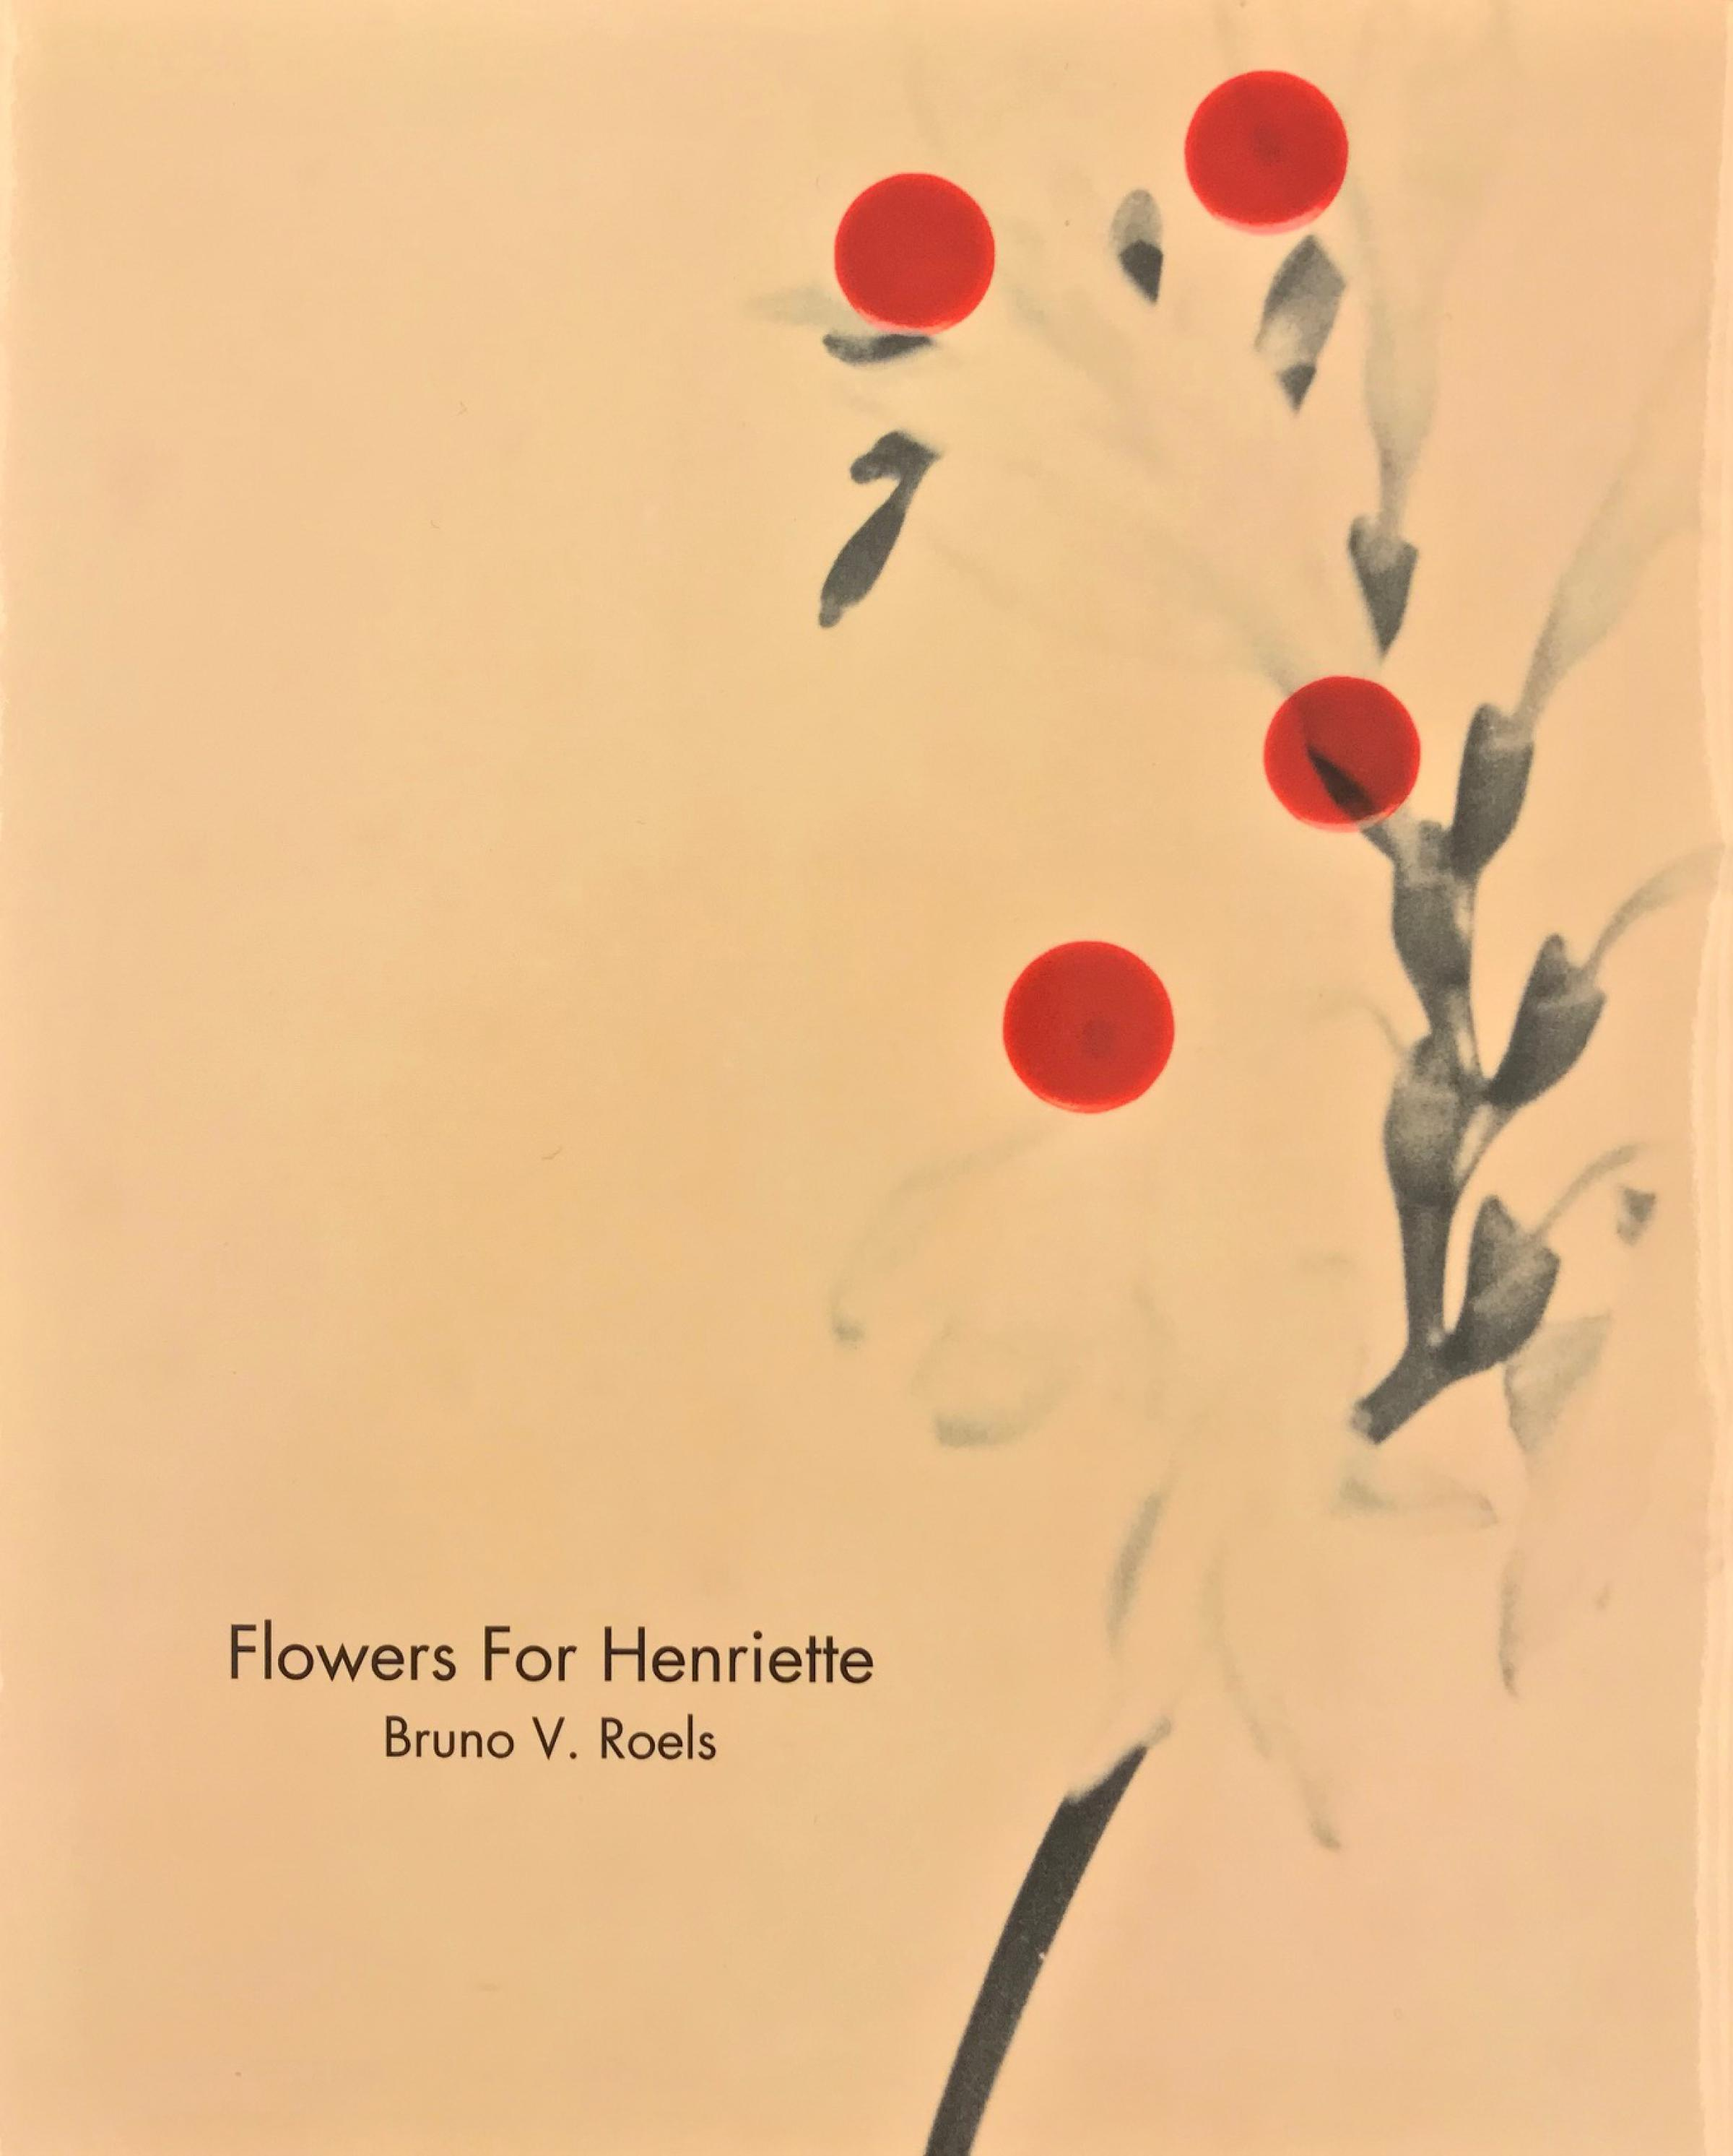 Bruno V. Roels: Flowers For Henriette